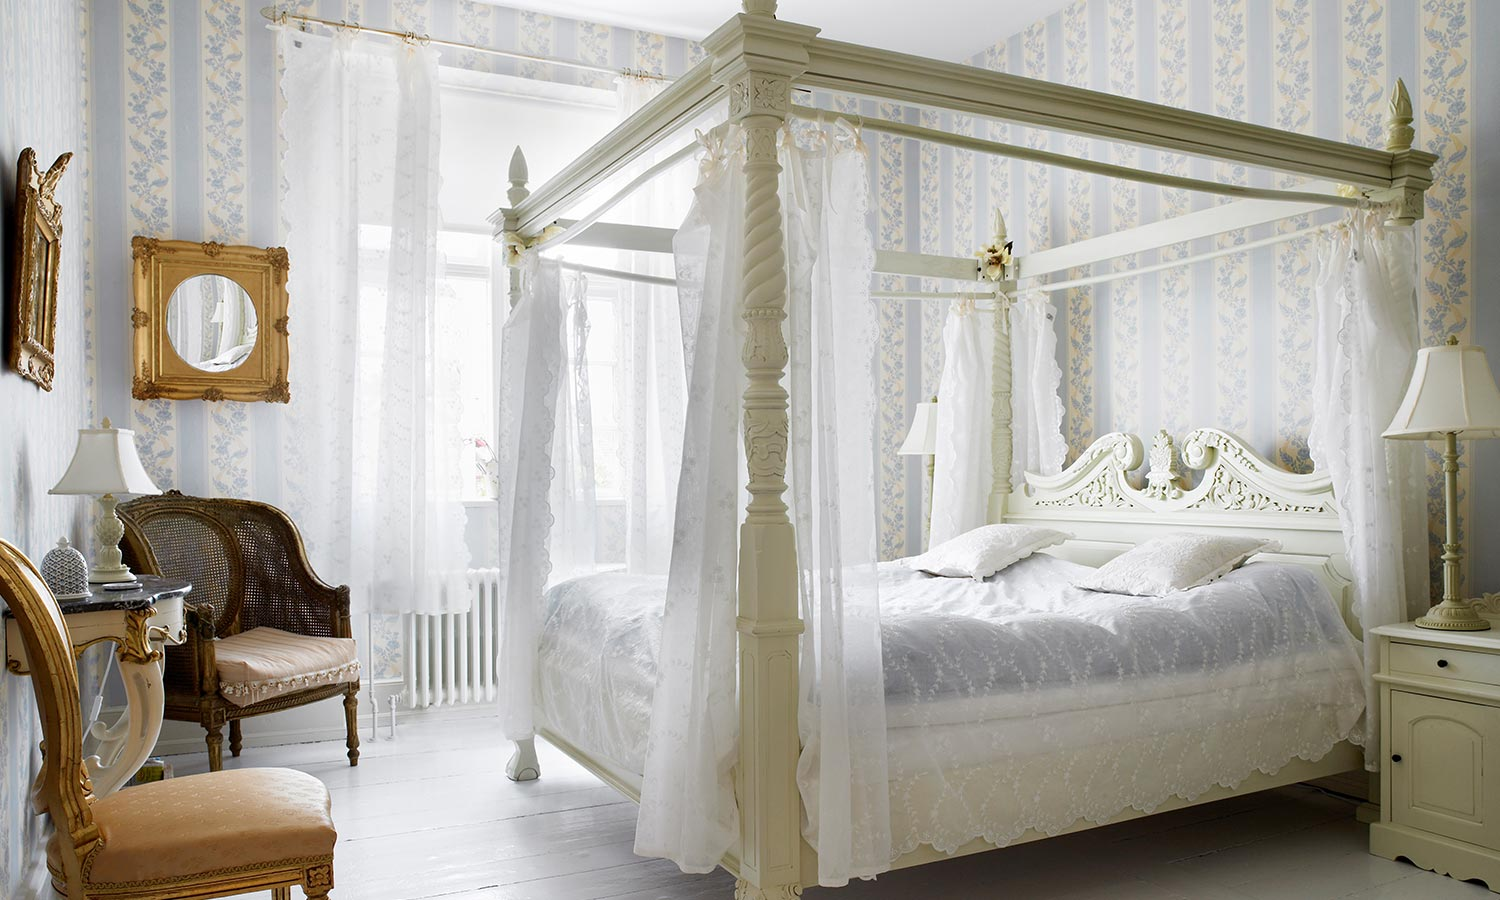 A canopy bed with thin and light fabric hanging from the top corners.